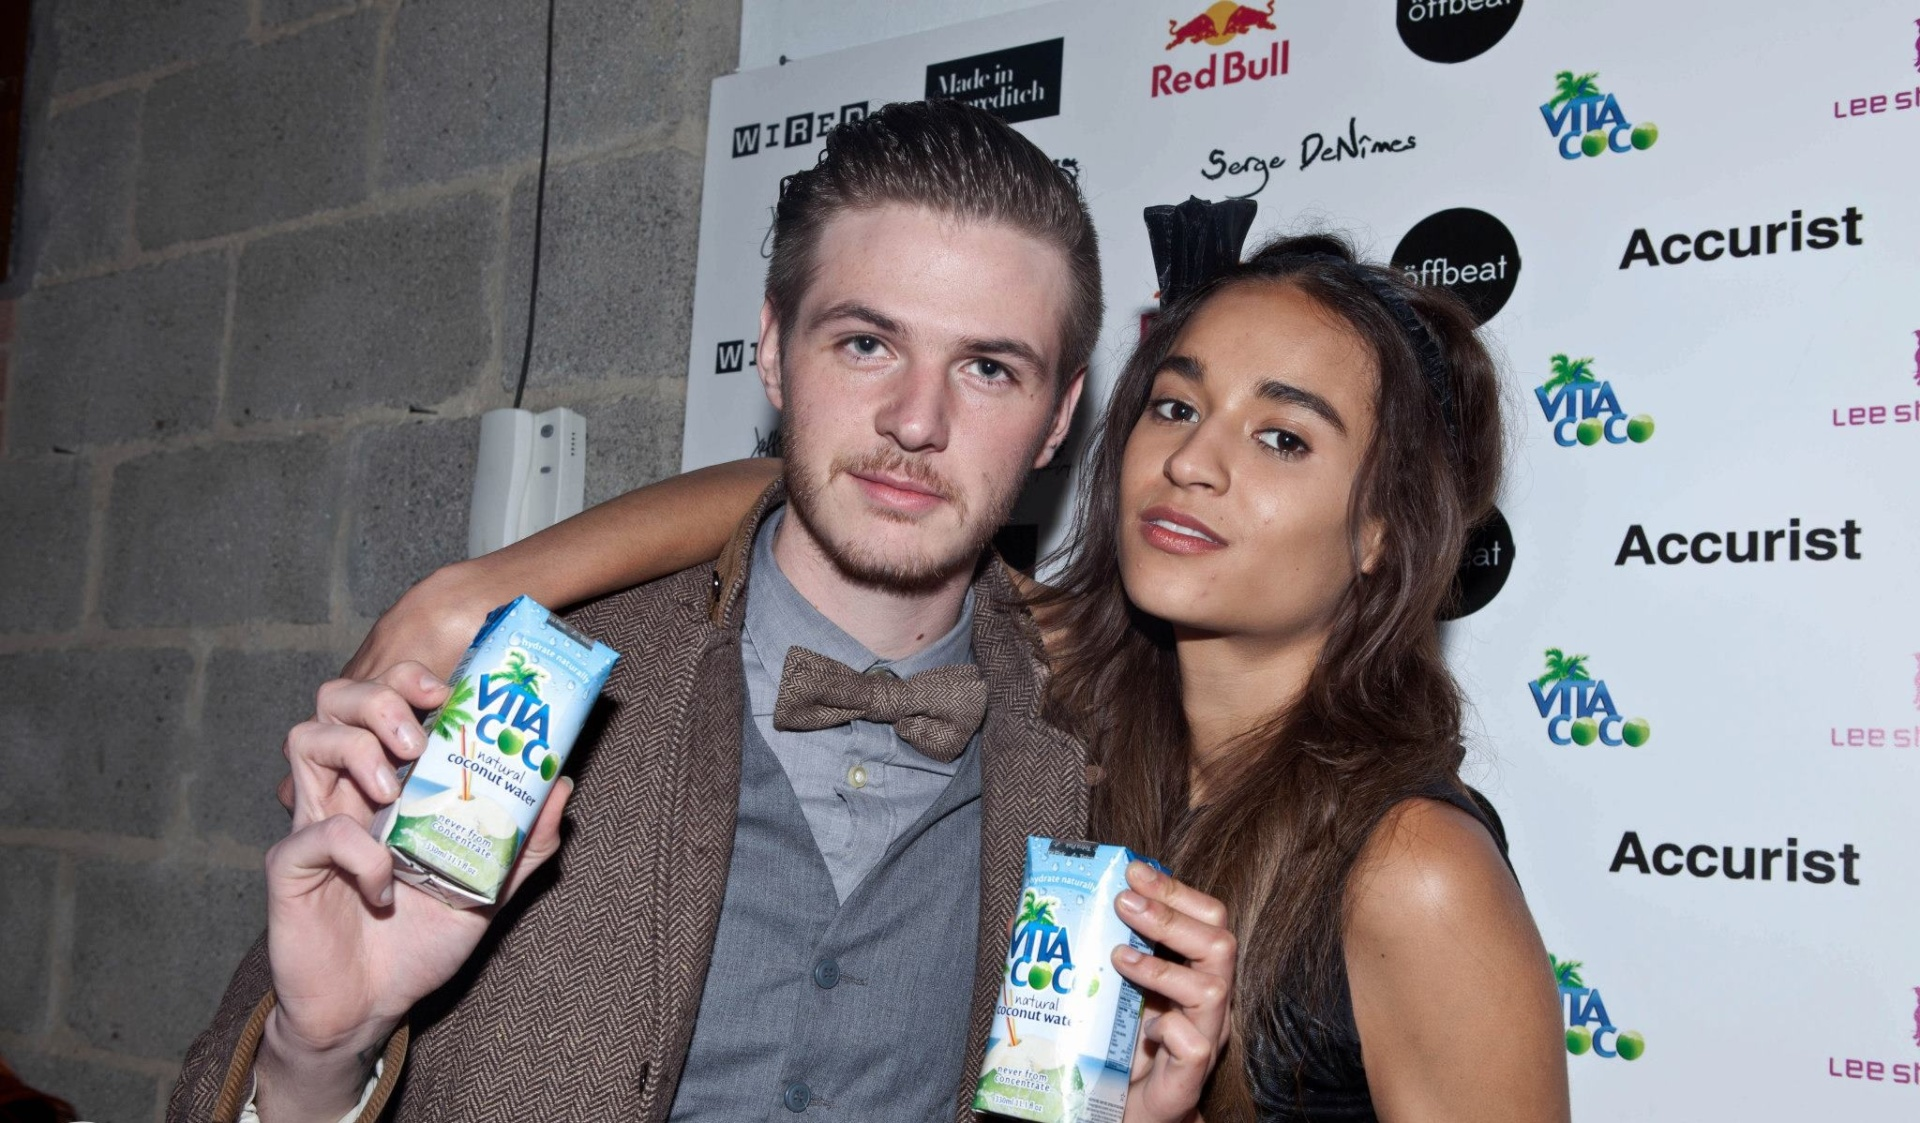 Photograph of the Shoreditch Fashion Show- two people holding coconut milk. Graphic design by Barefaced Studios, design agency based in Islington, North London.